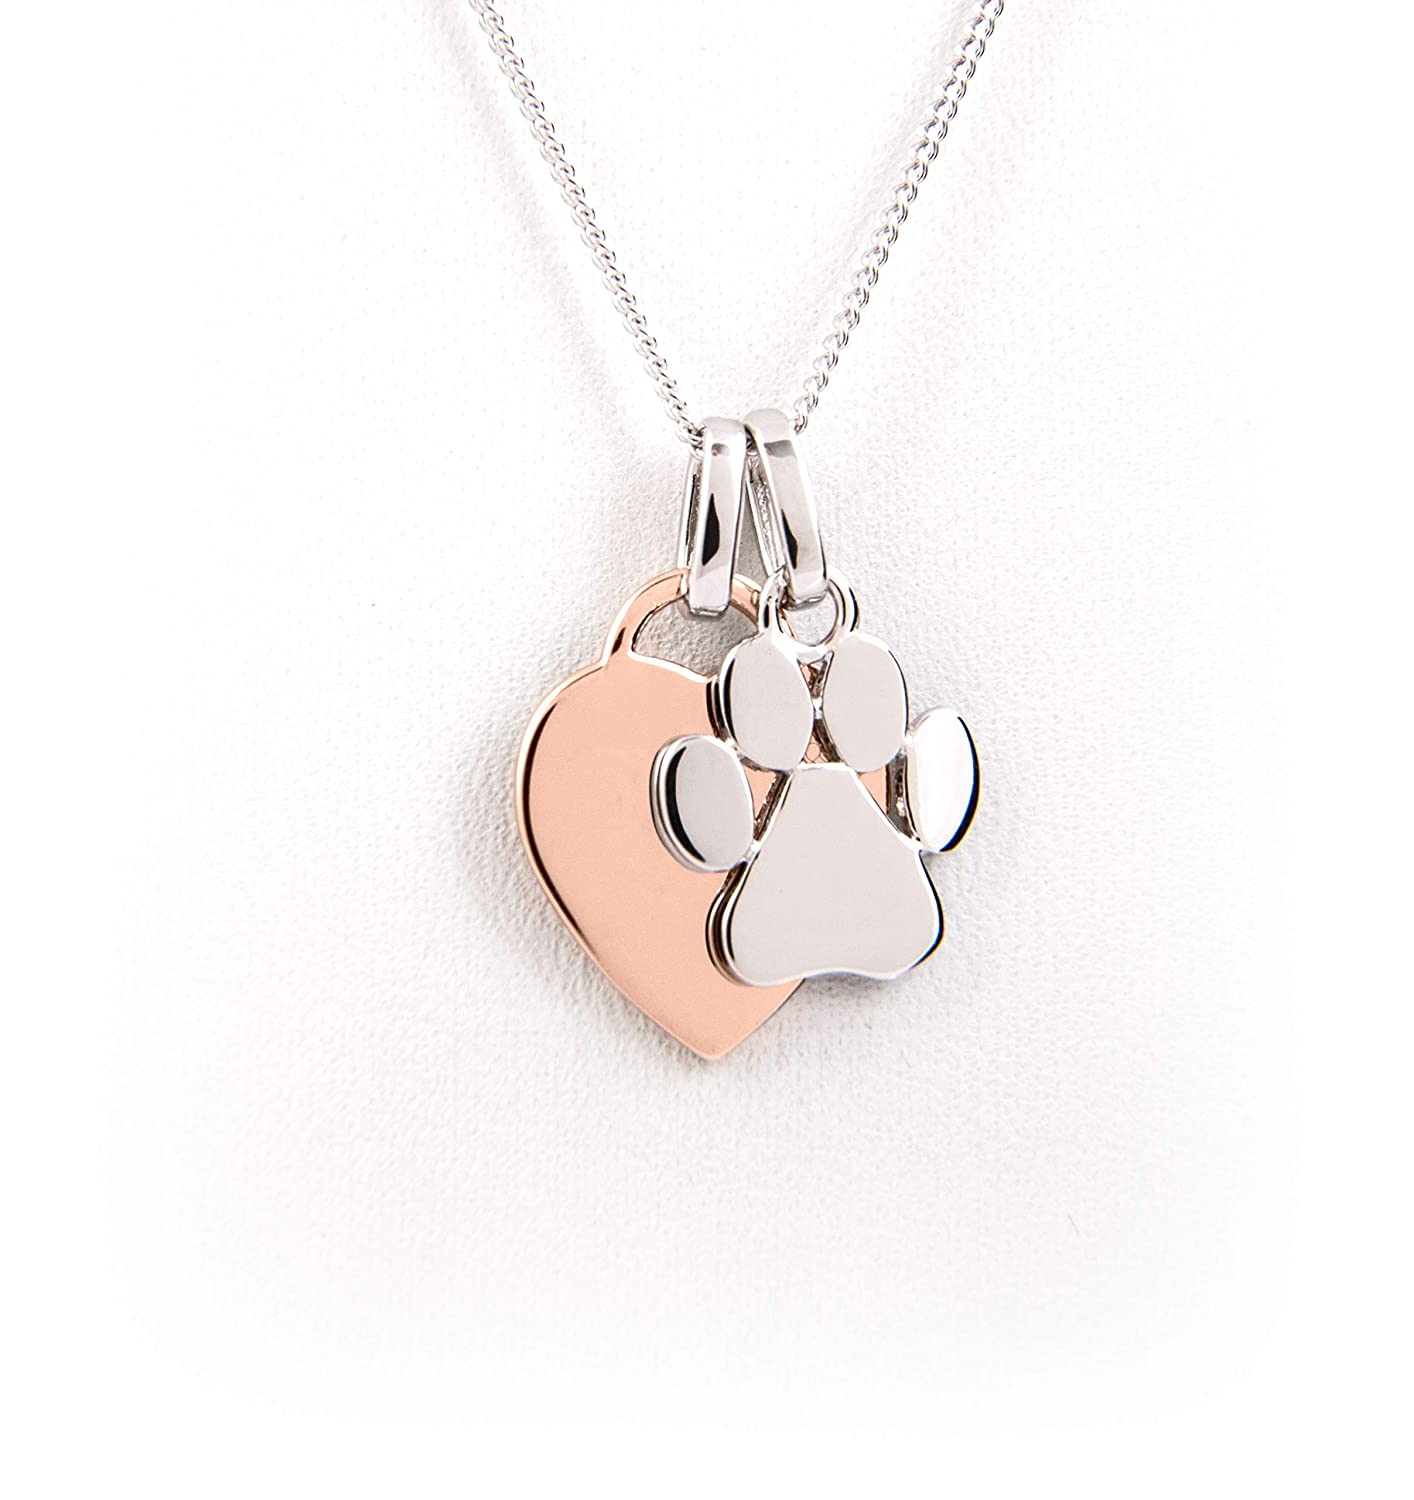 fa9eb94a476a1 Heart & Paw Print Necklace - Rose Gold Plated Silver - Dog Lover Gift, Dog  Paw Charm, Pet Memorial, Dog Memorial, Dog Loss, Dog Jewelry